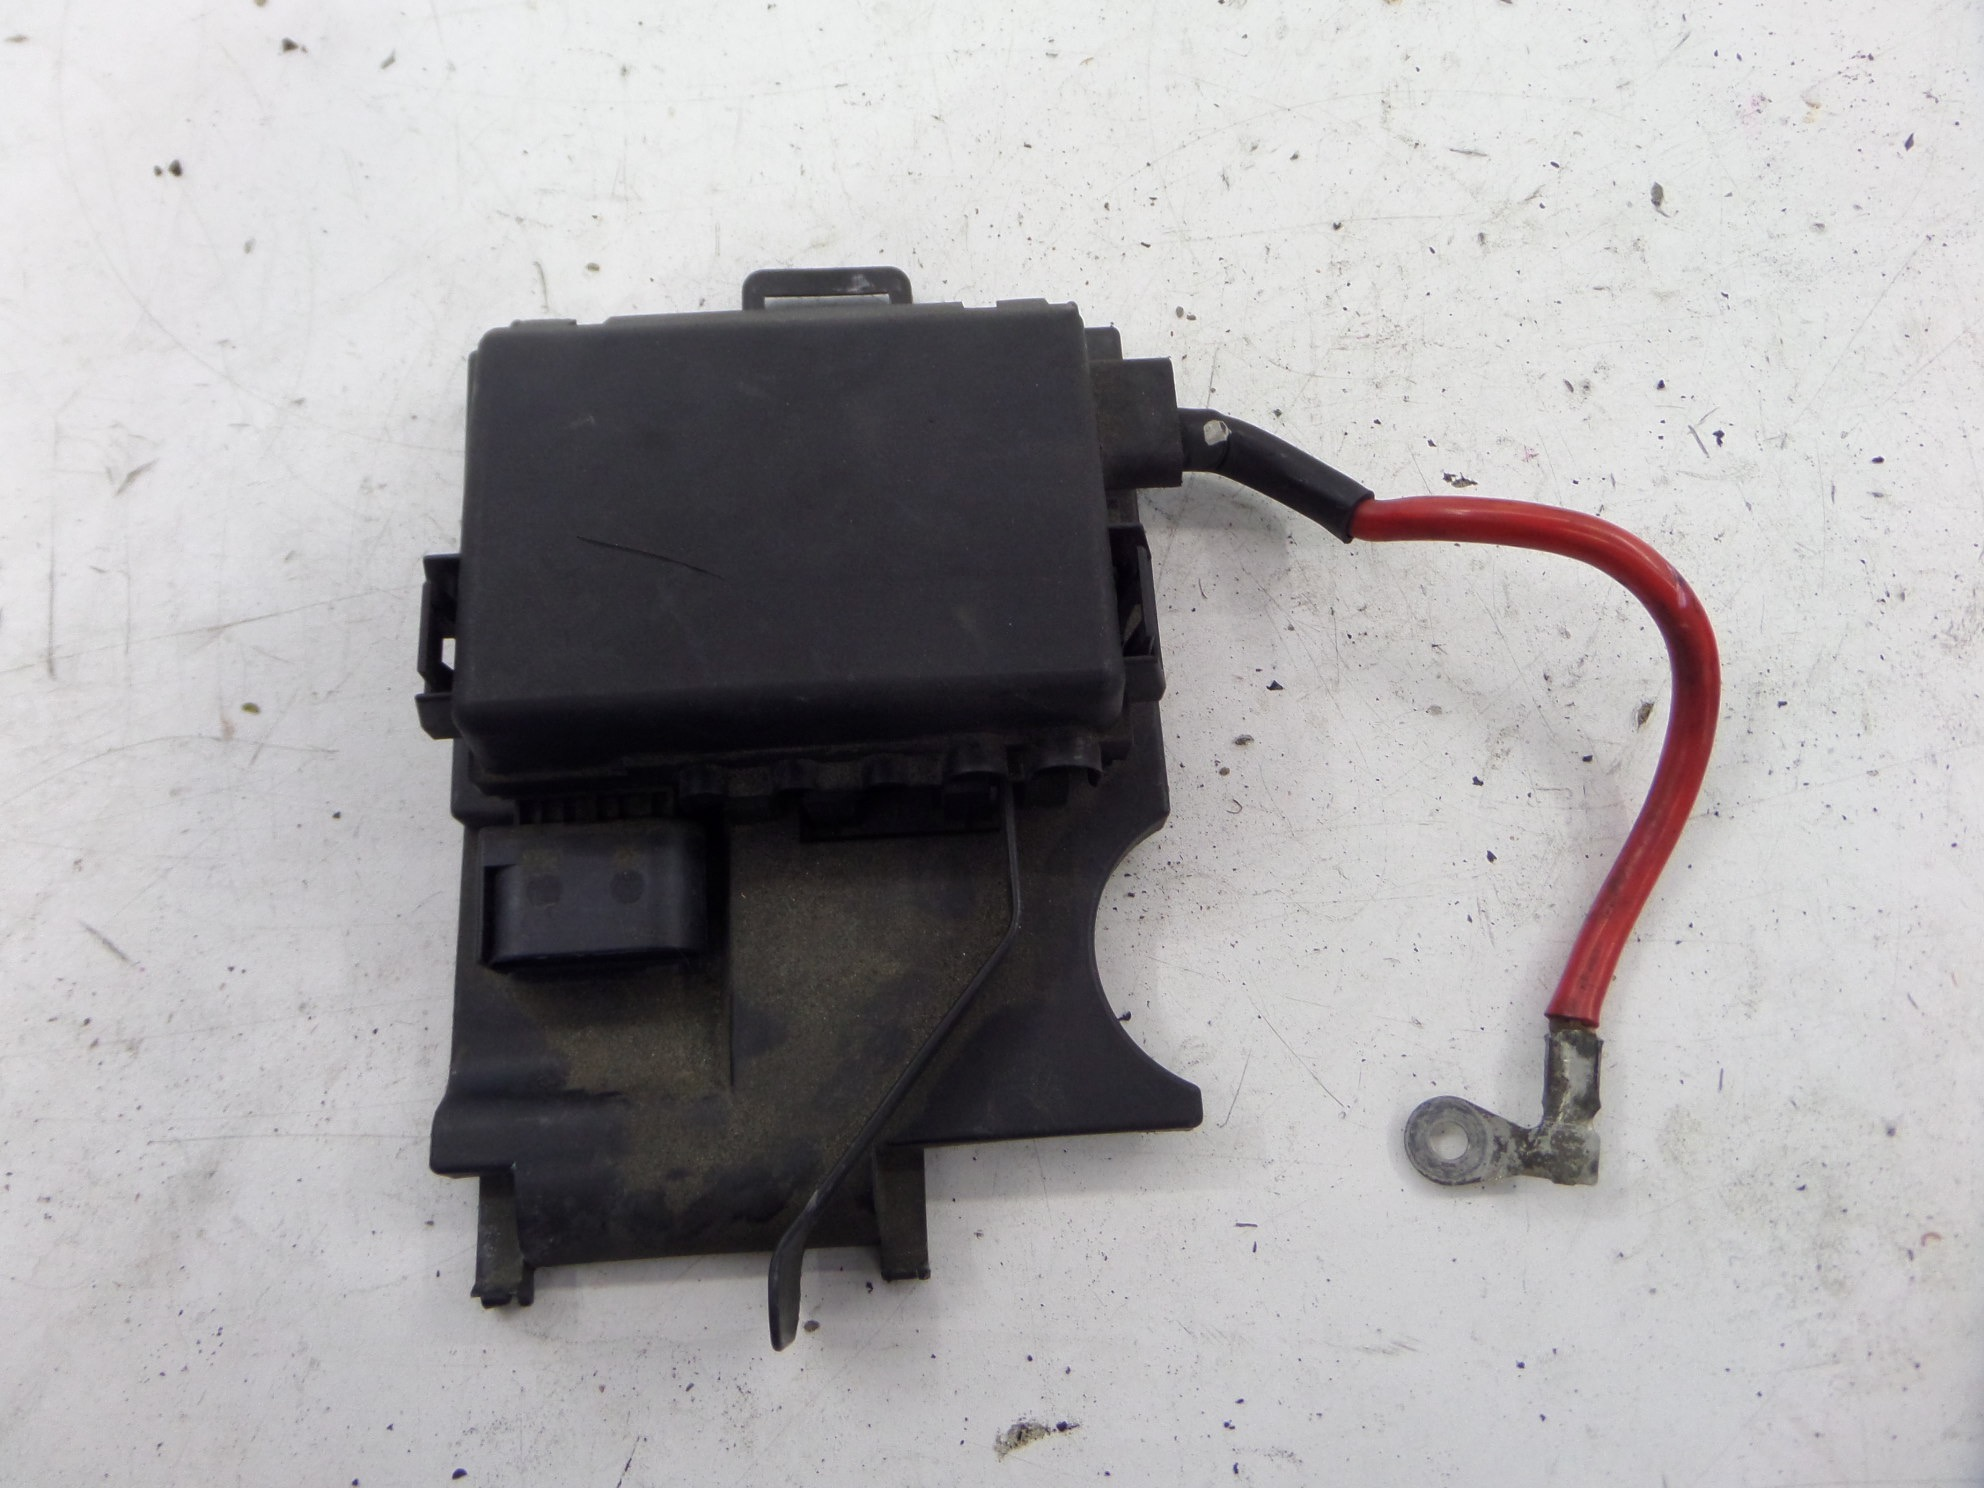 VW Jetta Golf GTI Battery Top Fuse Box MK4 00-05 OEM 1J0 937 559 B Jetta |  eBayeBay